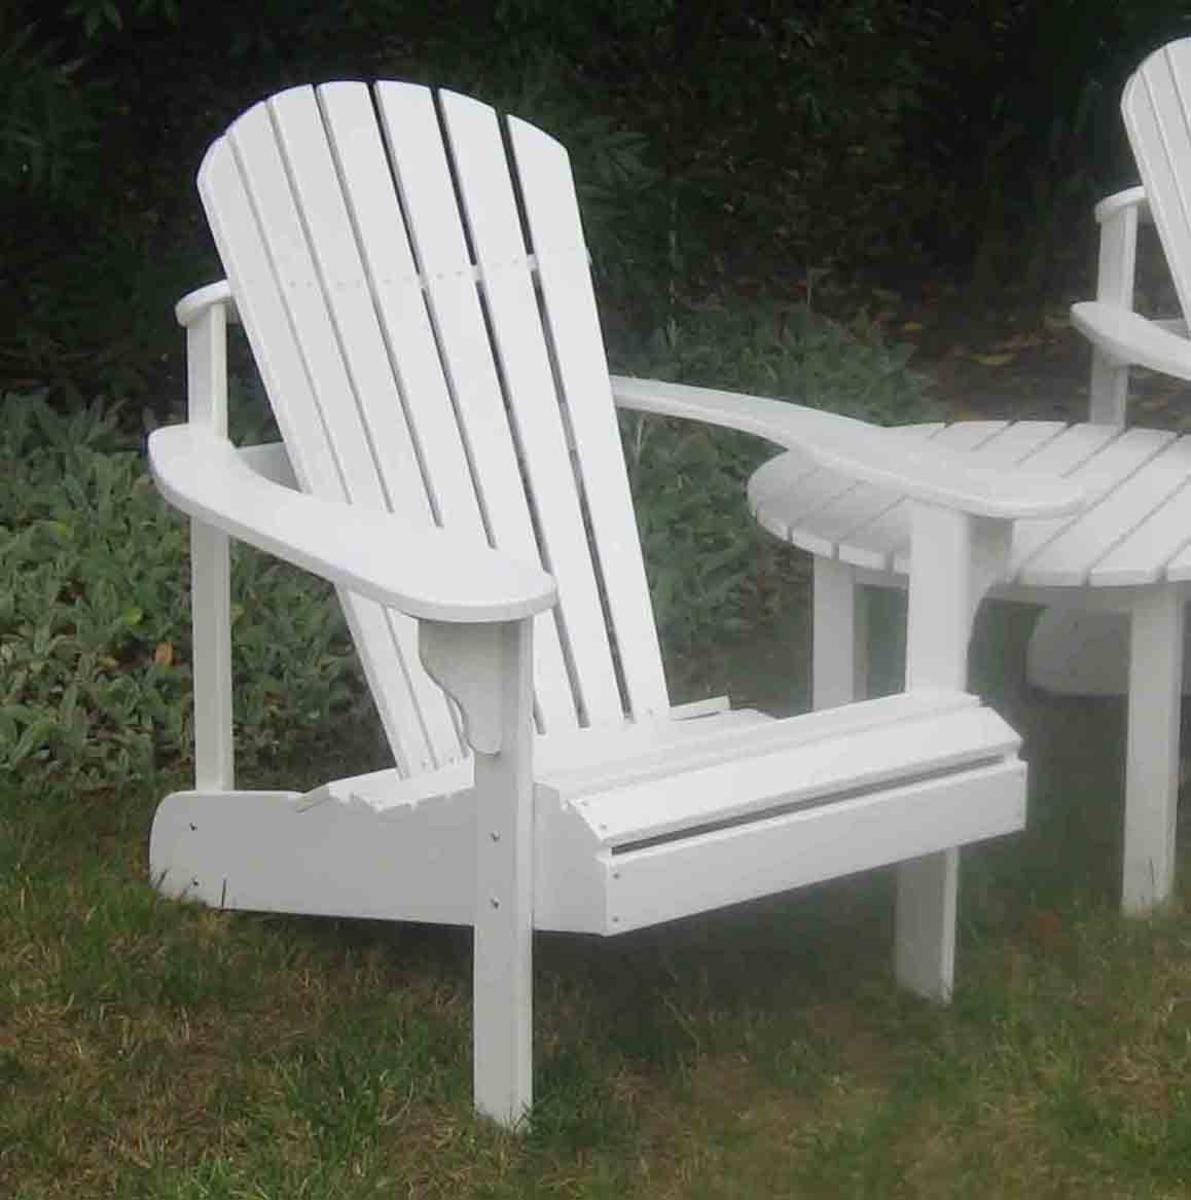 King Chairs Chair King Outdoor Furniture Photo Albums Of